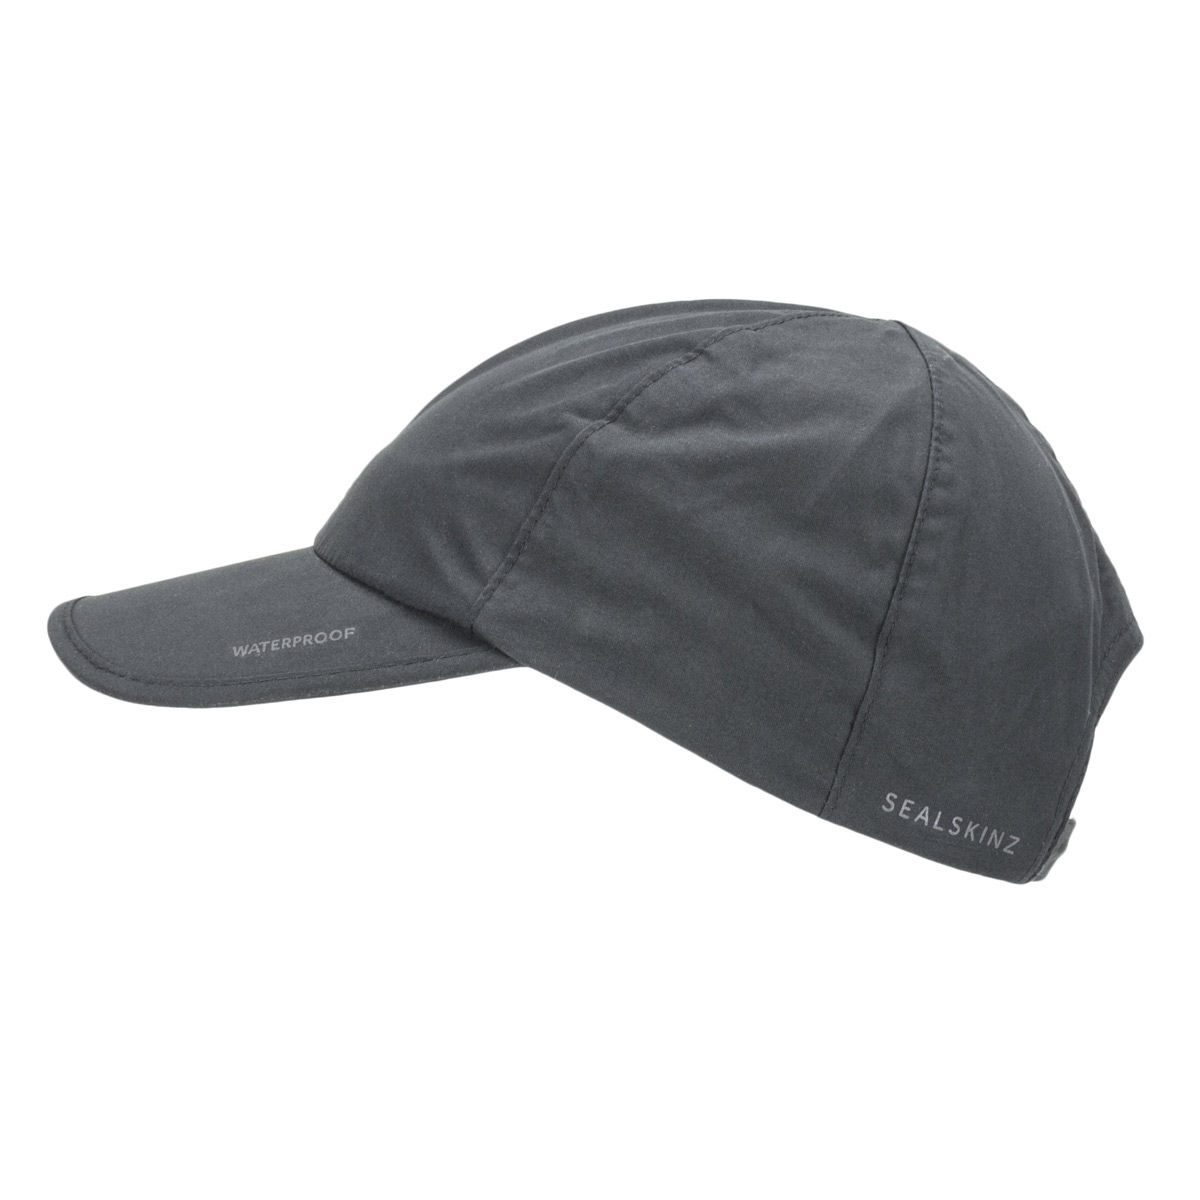 SealSkinz Waterproof All Weather Cap